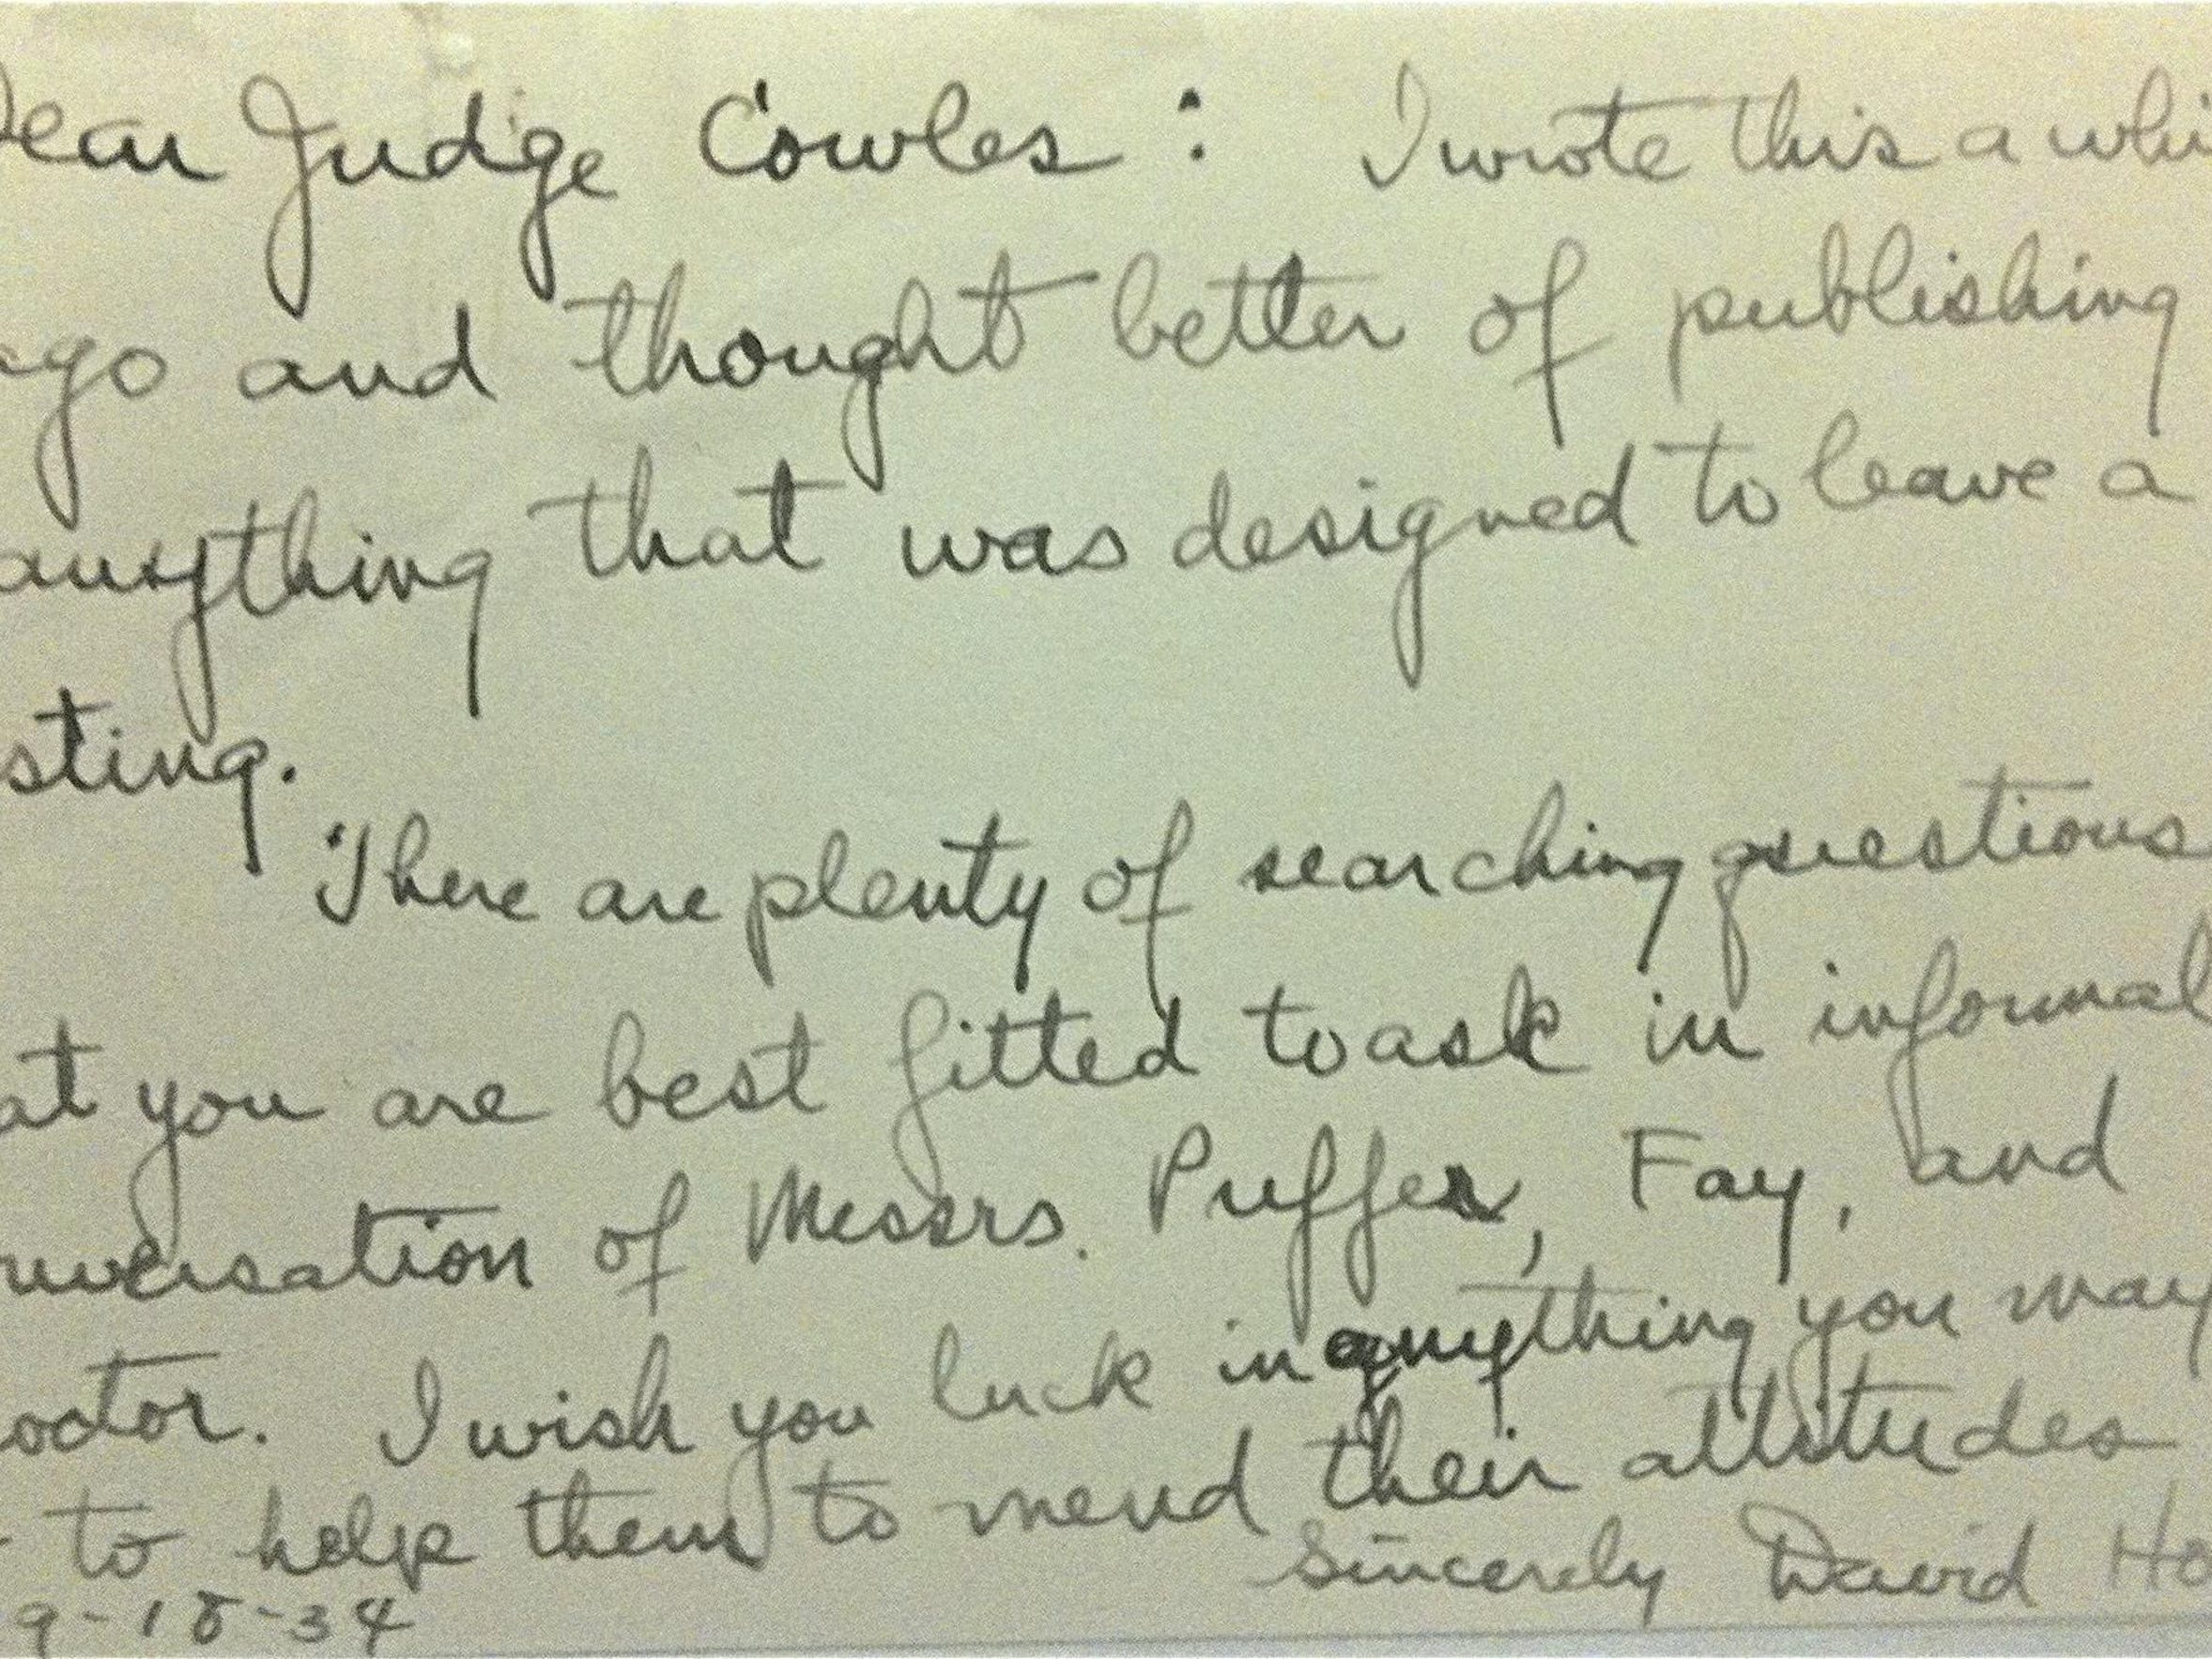 Howe letter to Cowles